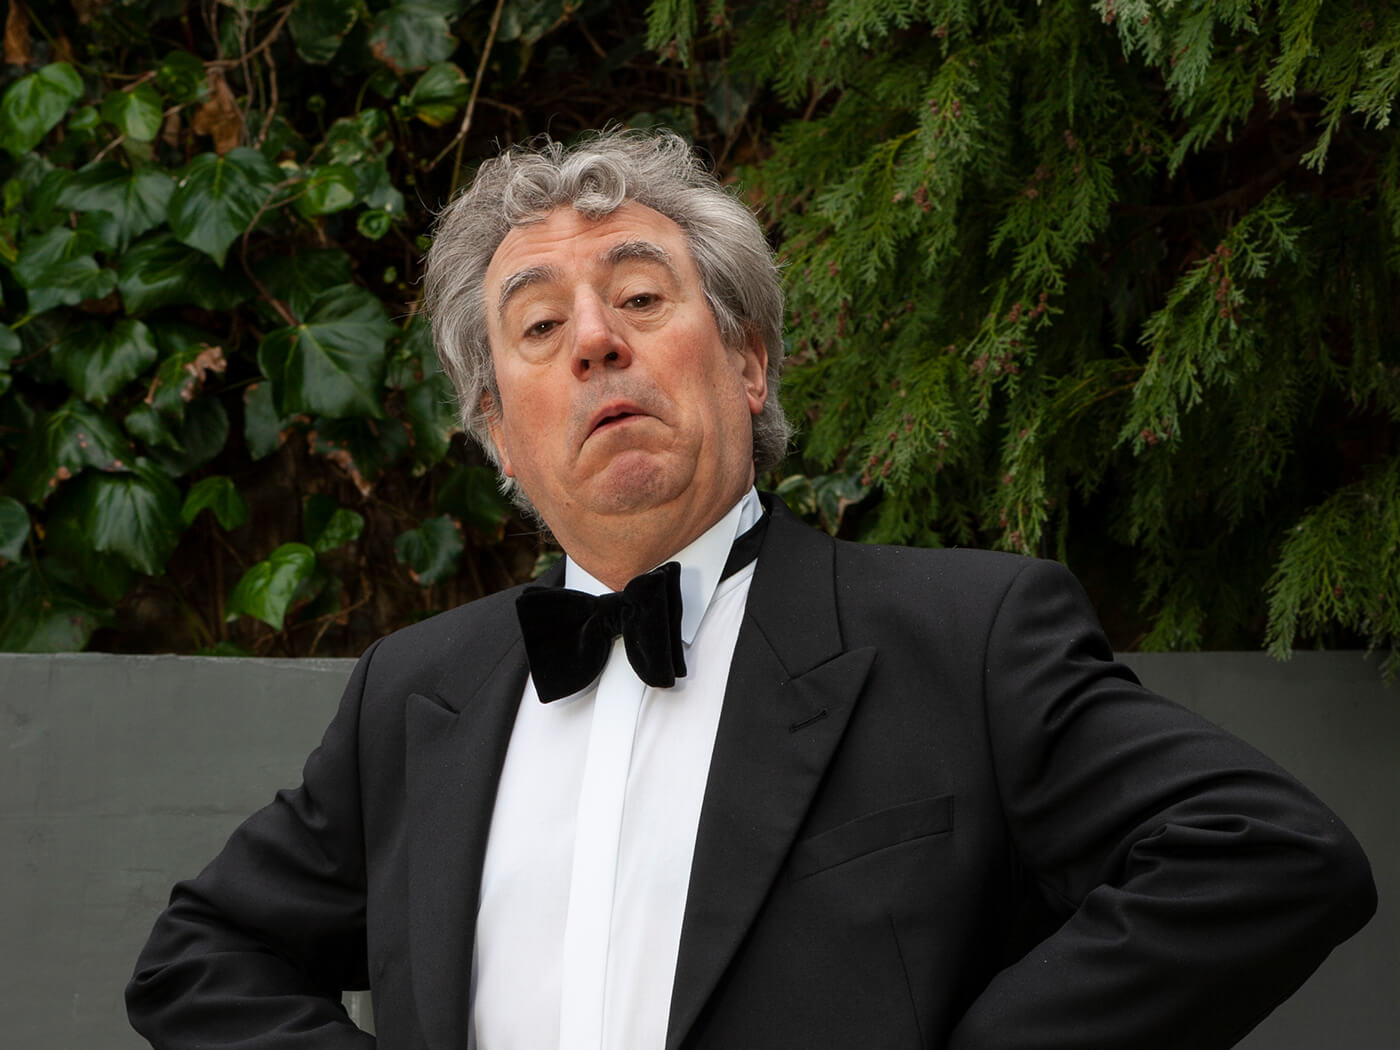 Monty Python's Terry Jones has died, aged 77 - UNCUT